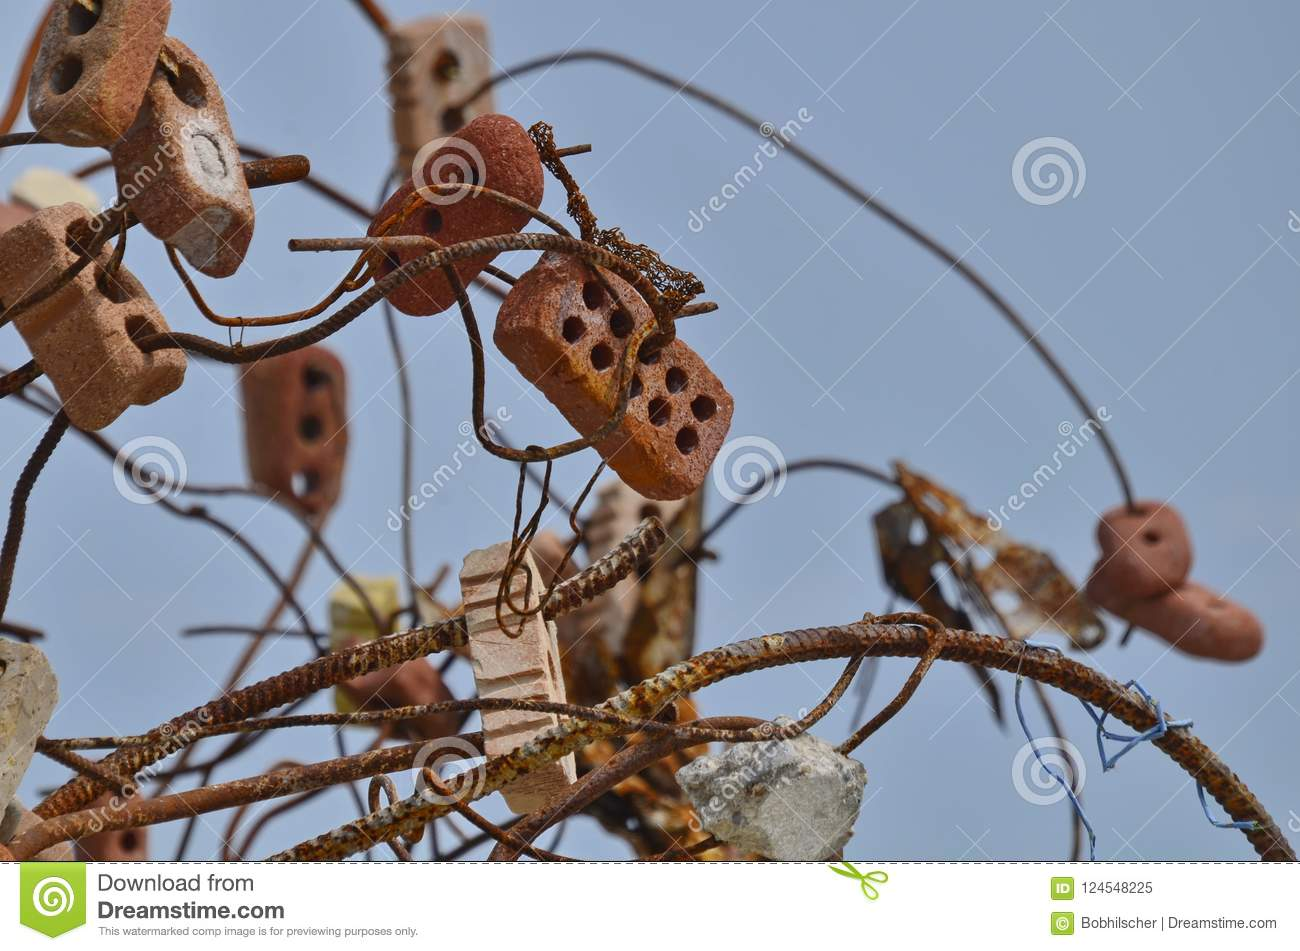 Eroded Bricks And Rusty Steel Rebar Sculpture Stock Image - Image of ...